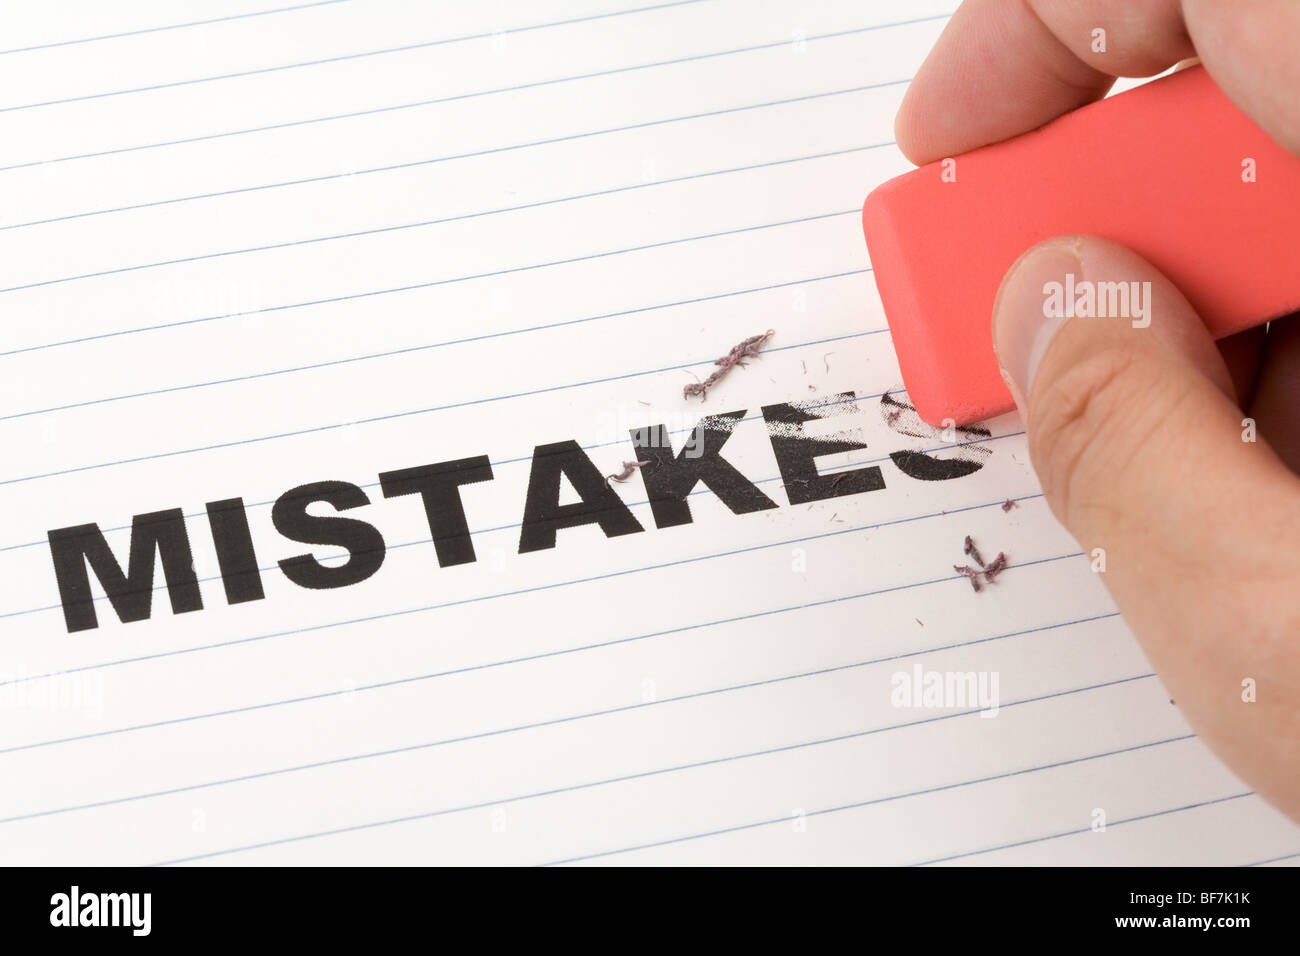 eraser and word mistakes, concept of Making Changing - Stock Image